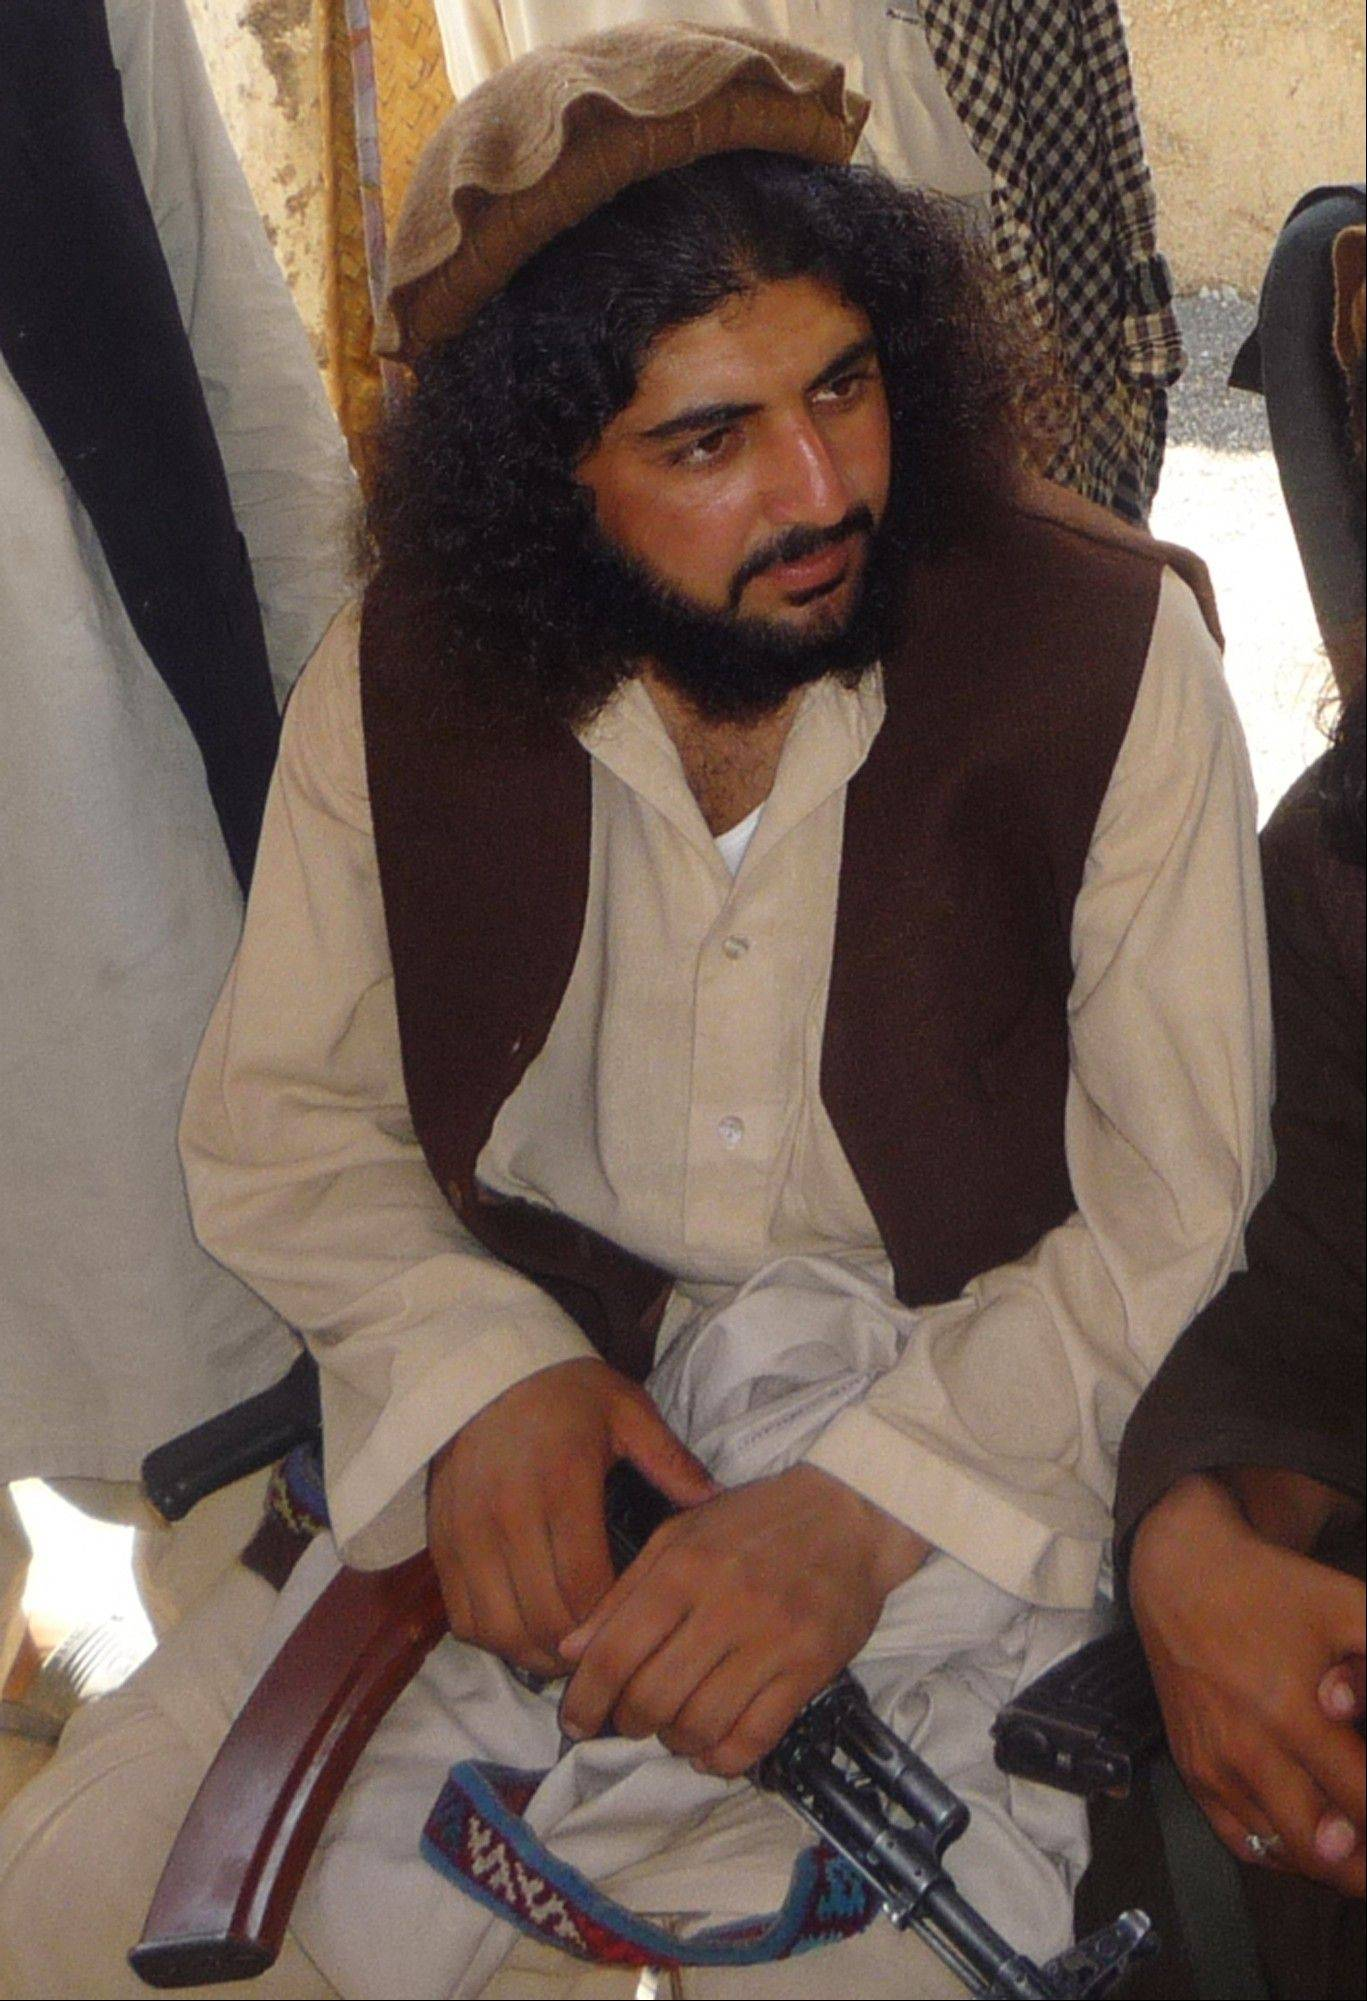 Pakistani Taliban commander Latif Mehsud sits with fellows in Sararogha in south Waziristan in Pakistan.